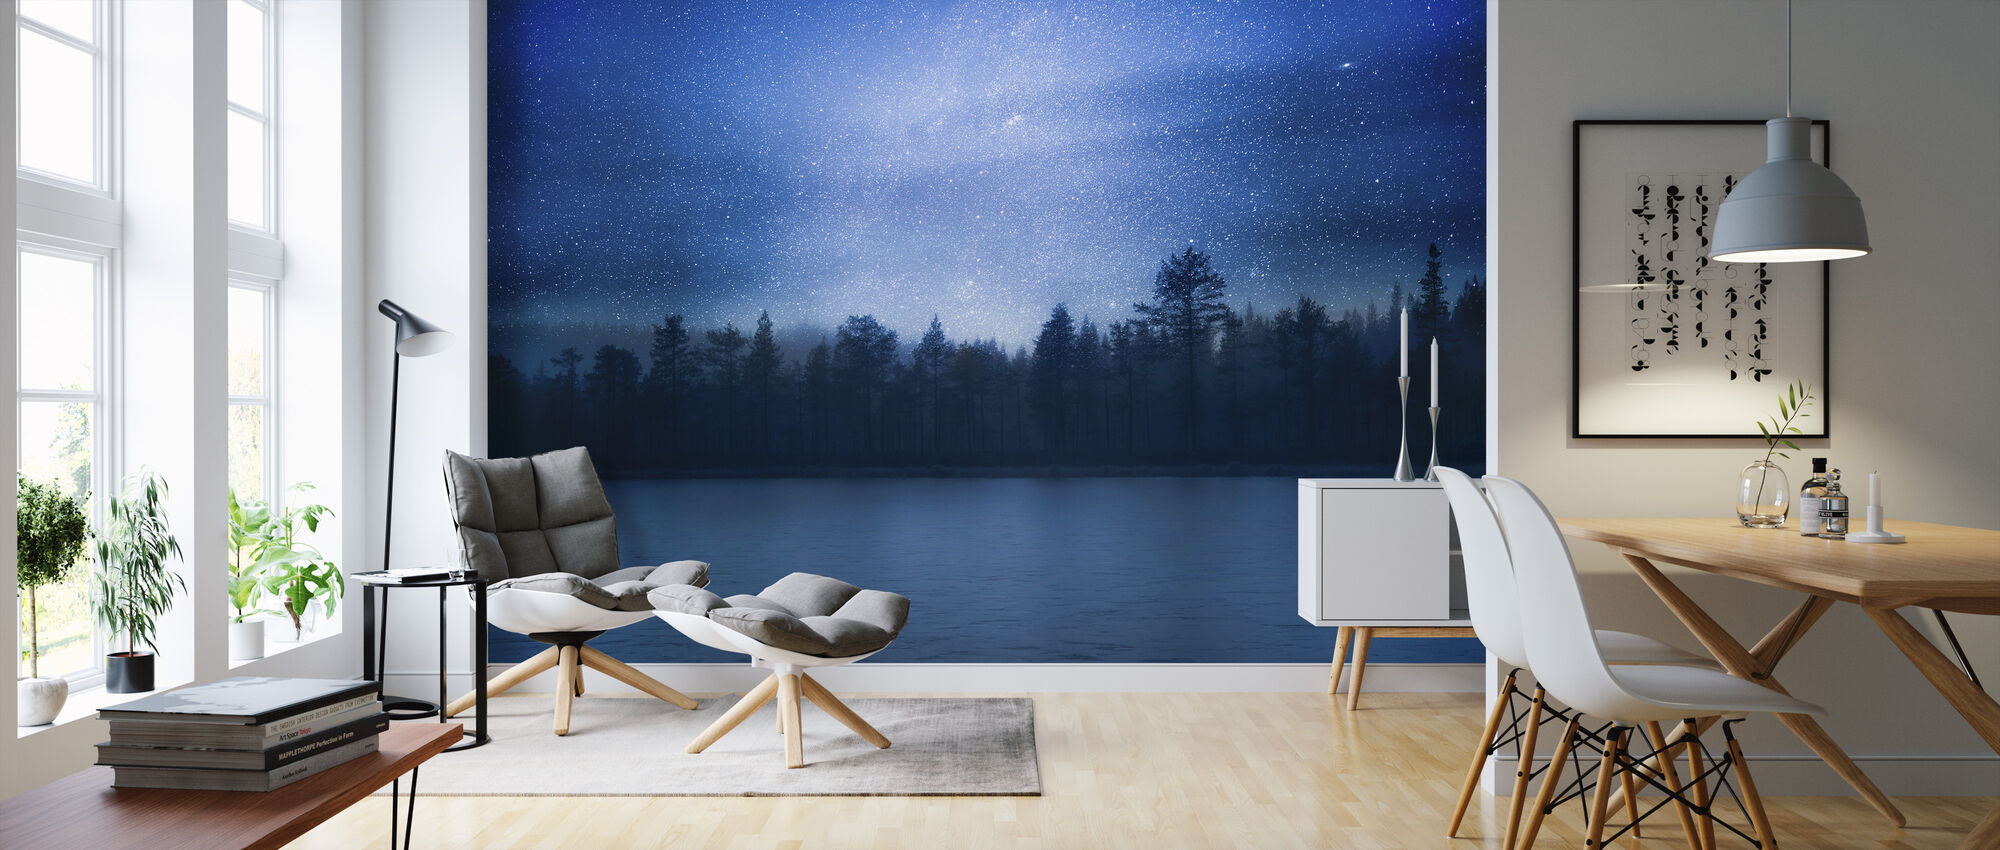 Andromeda - Wallpaper - Living Room